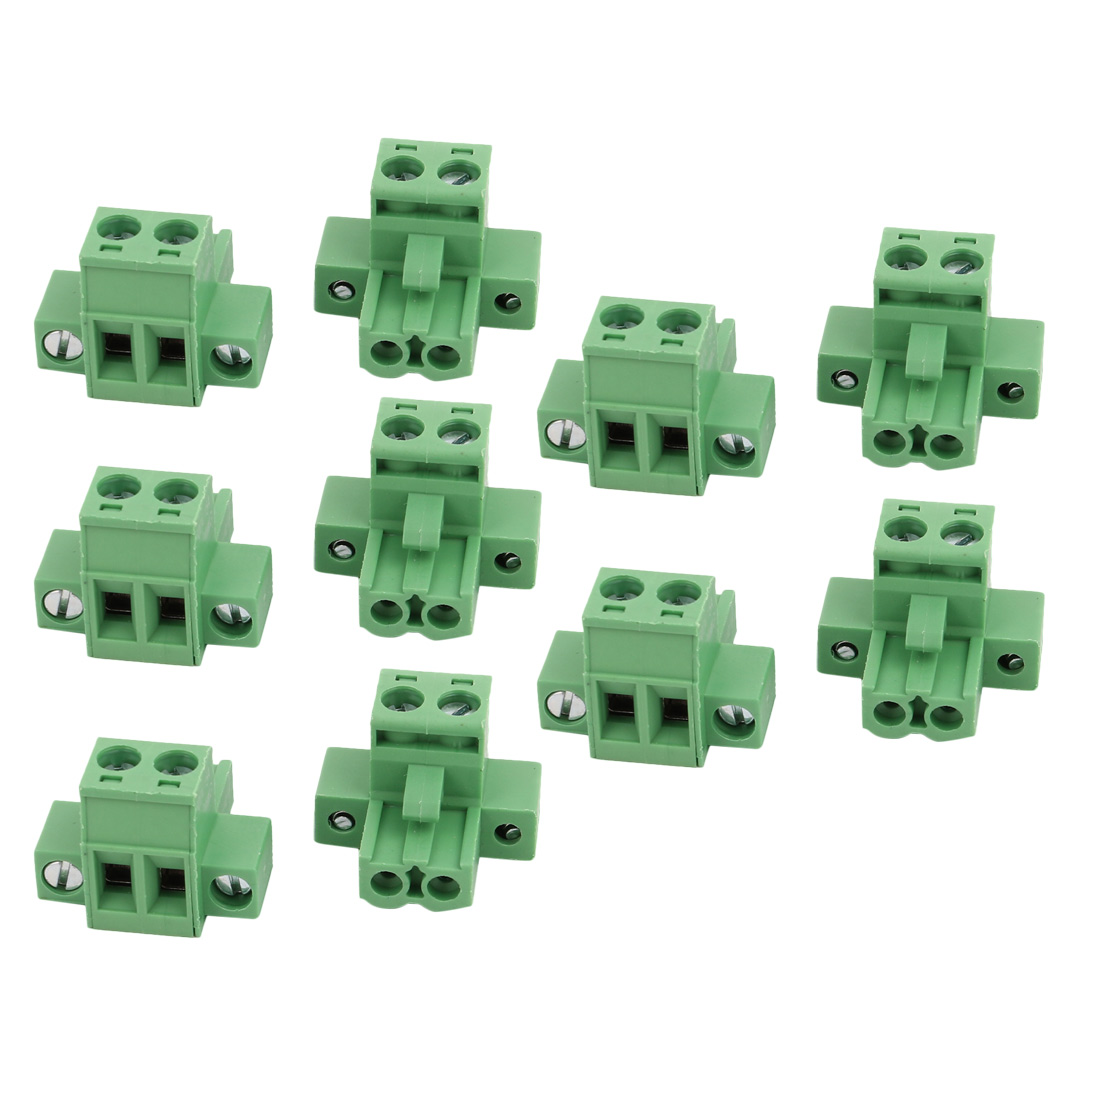 10 Pcs LC1M AC300V 15A 5.08mm Pitch 2P PCB Mount Terminal Block Wire Connector